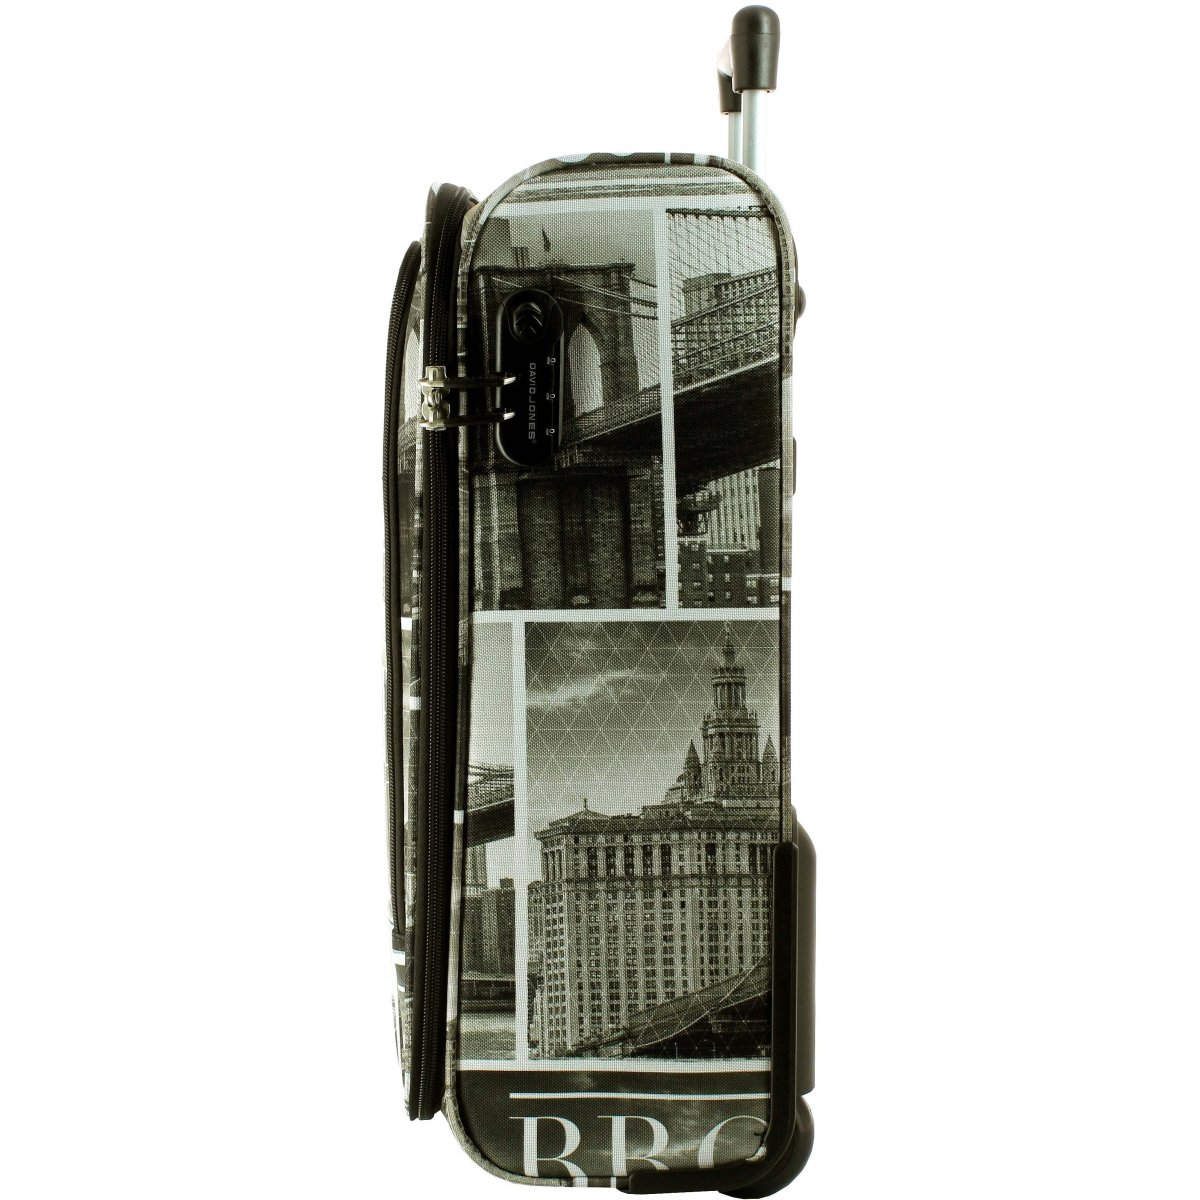 valise cabine ryanair david jones 50 cm ba50271p couleur principale brooklyn solde. Black Bedroom Furniture Sets. Home Design Ideas